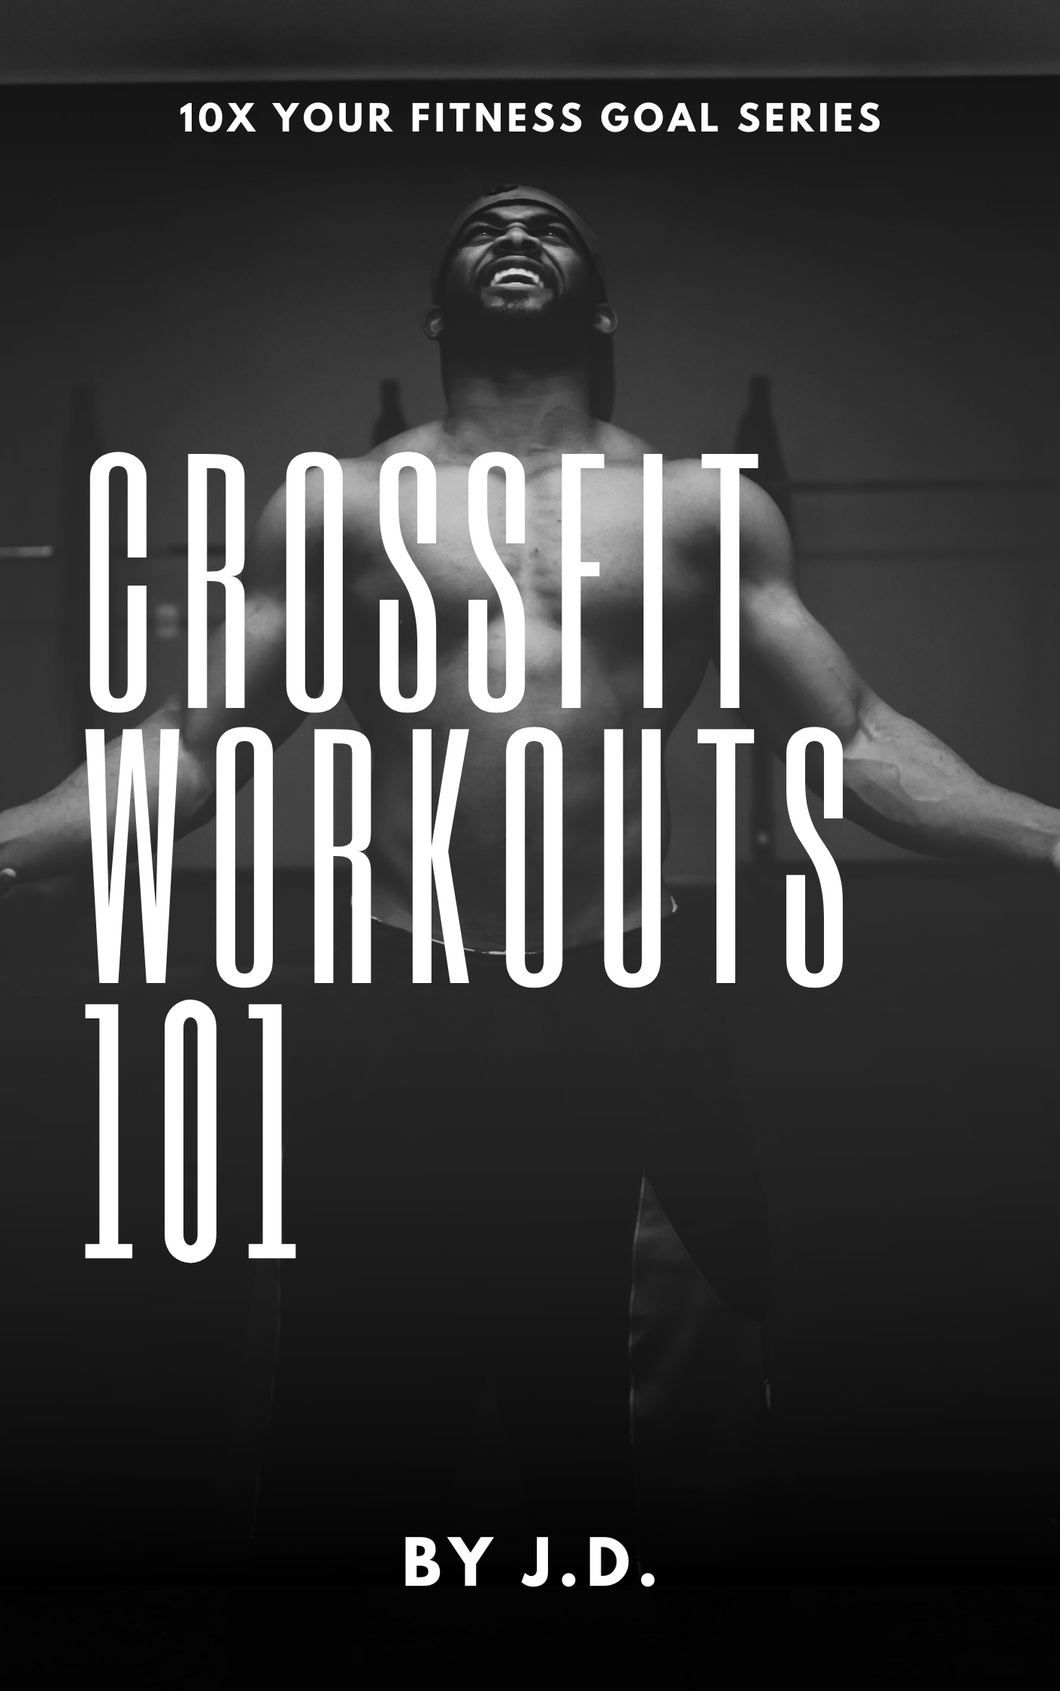 CrossFit Workouts 101 By J.D.